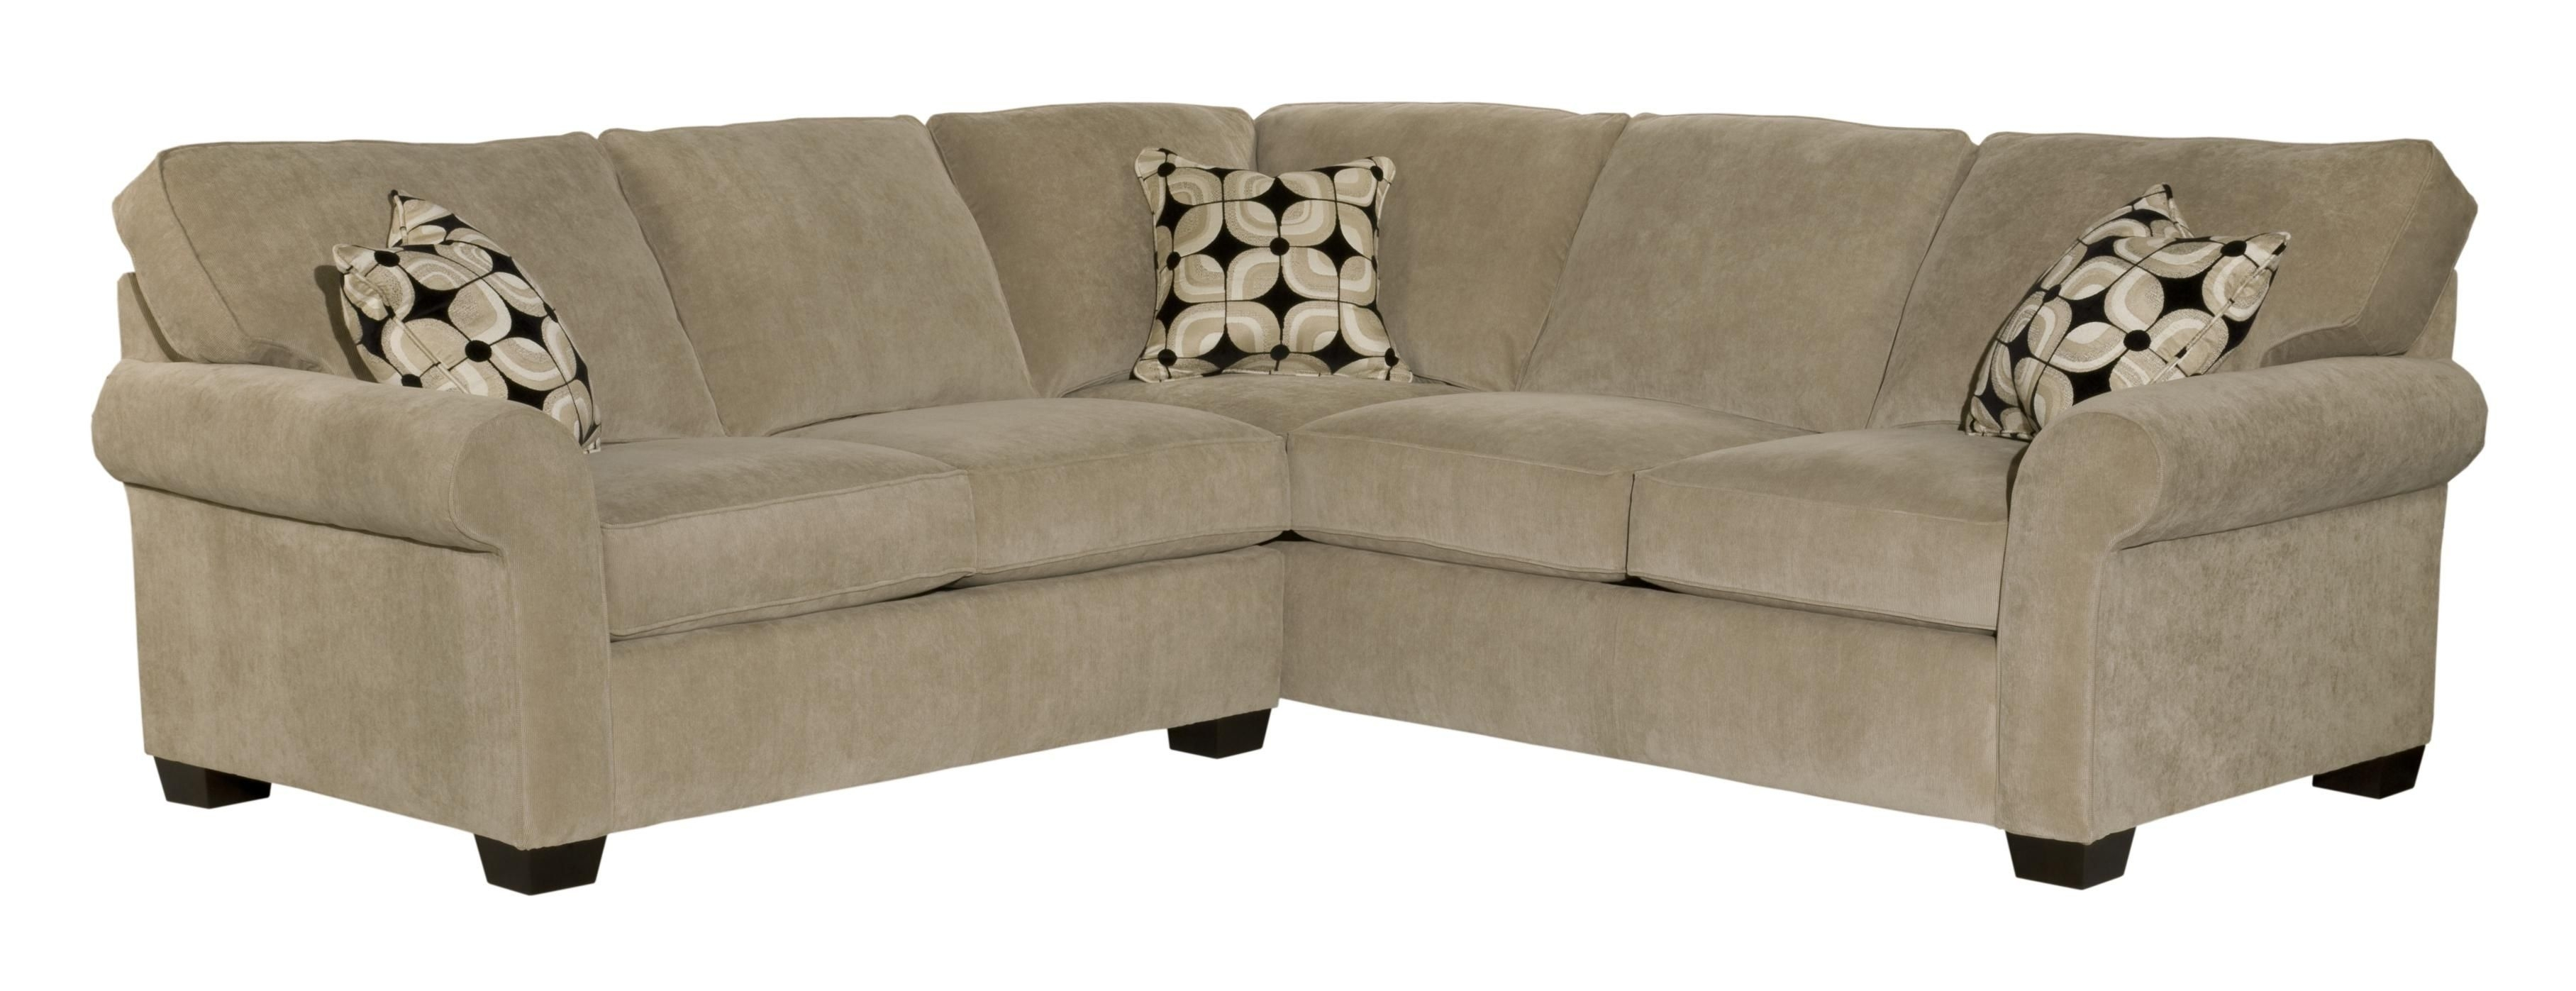 Ethan Two Piece Sectional With Corner Sofabroyhill Furniture Inside Sectional Sofas At Broyhill (Image 8 of 10)